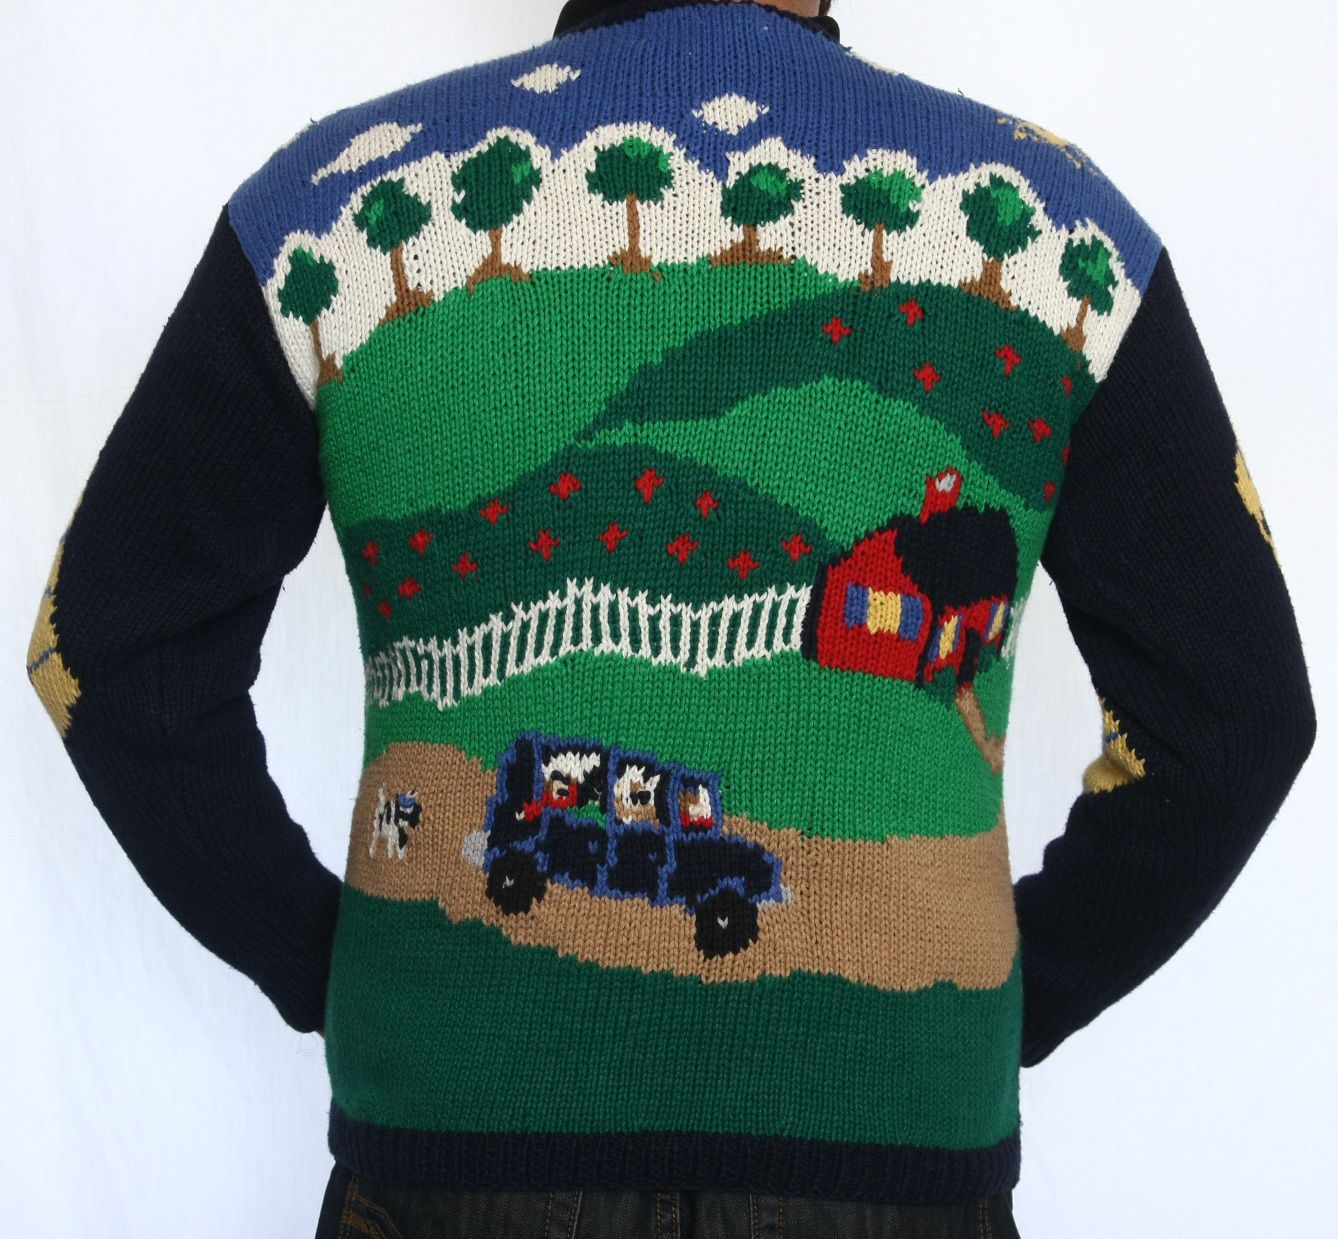 Family in SUV ugly sweater | Don't Sweat It: Ugly Sweaters ...